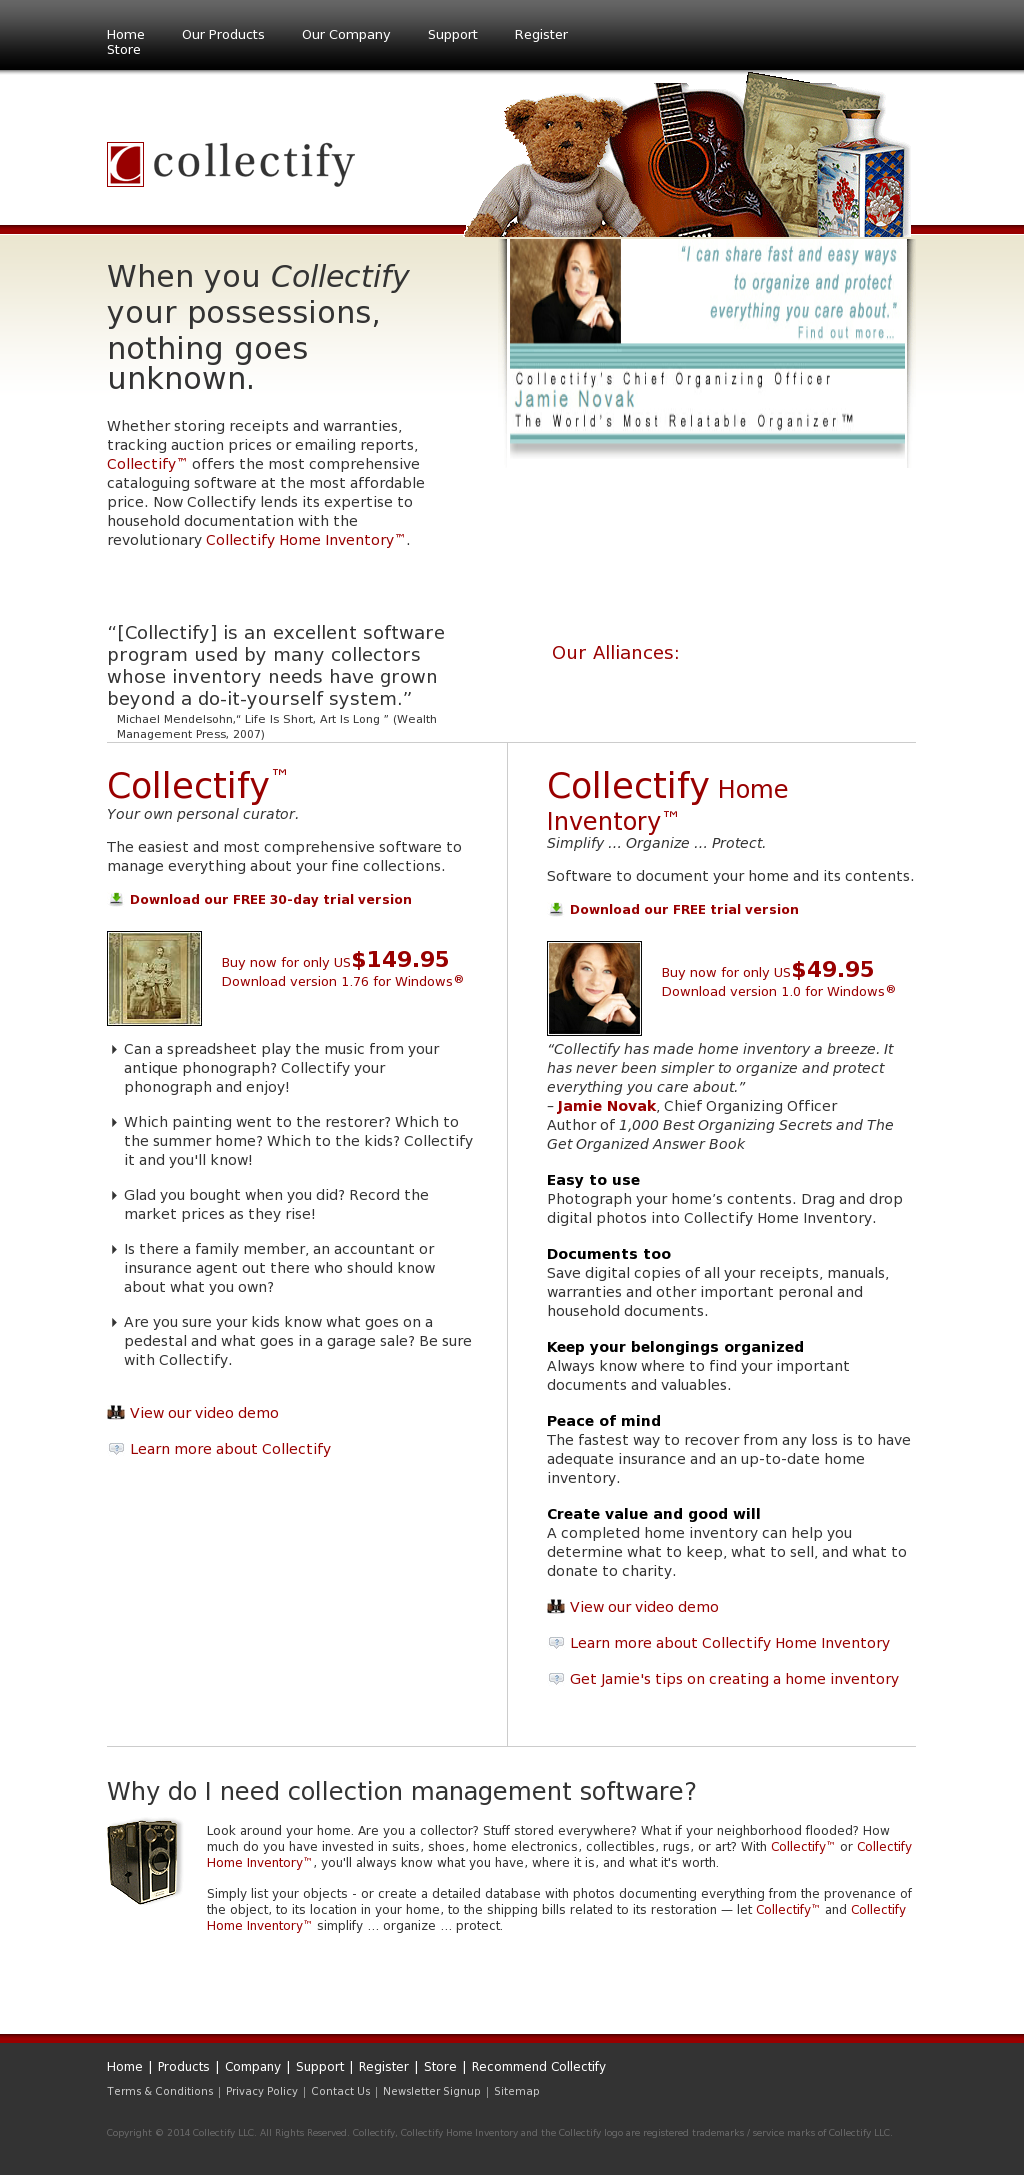 Collectify Competitors, Revenue and Employees - Owler